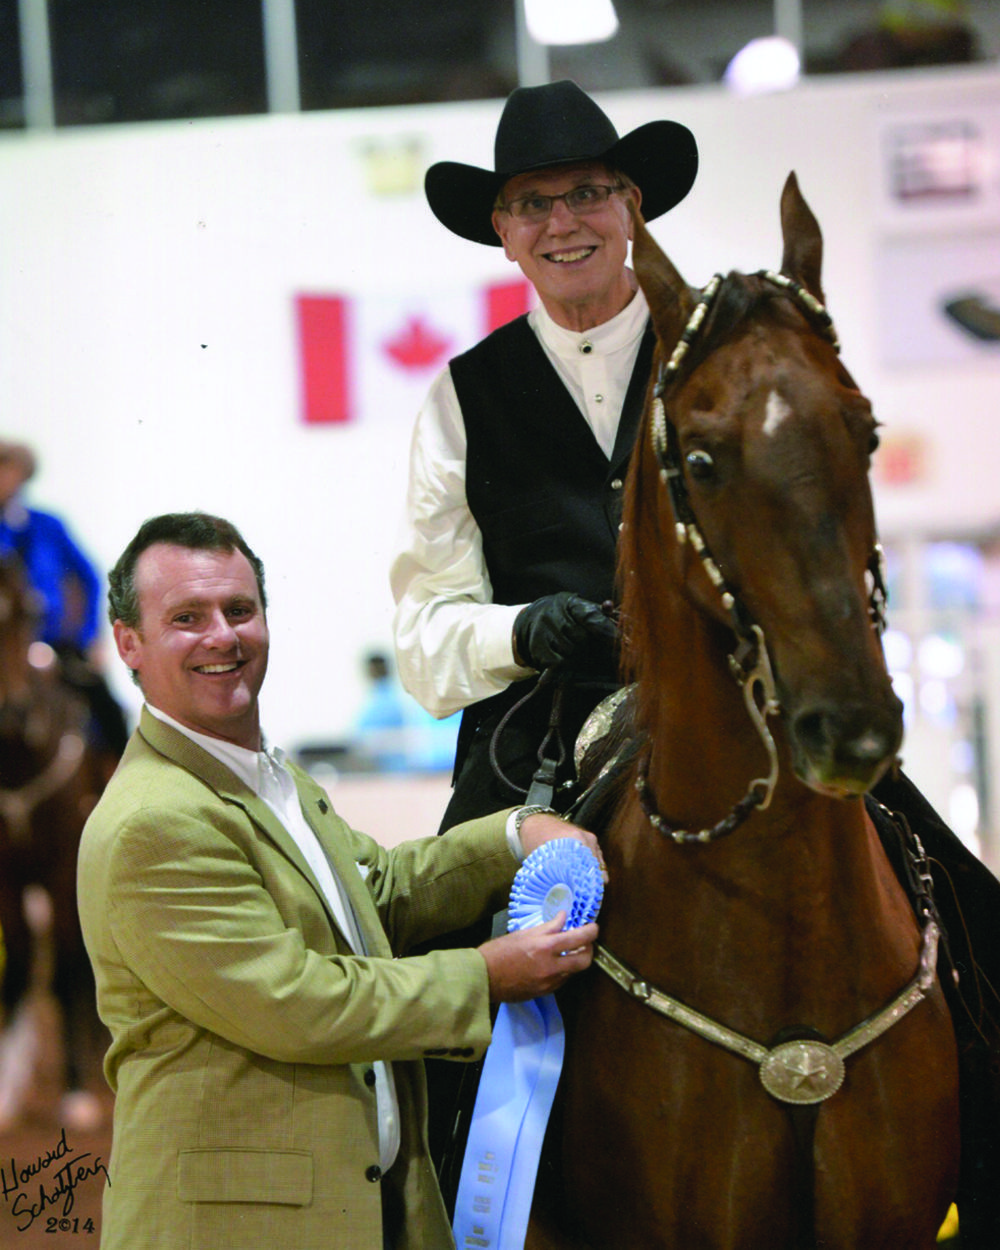 in 2013, Jack Swanson accepted a ribbon in Saddle & Bridle's Working Western Pleasure Finals proving that the top levels of horse showing can be enjoyed at any age.